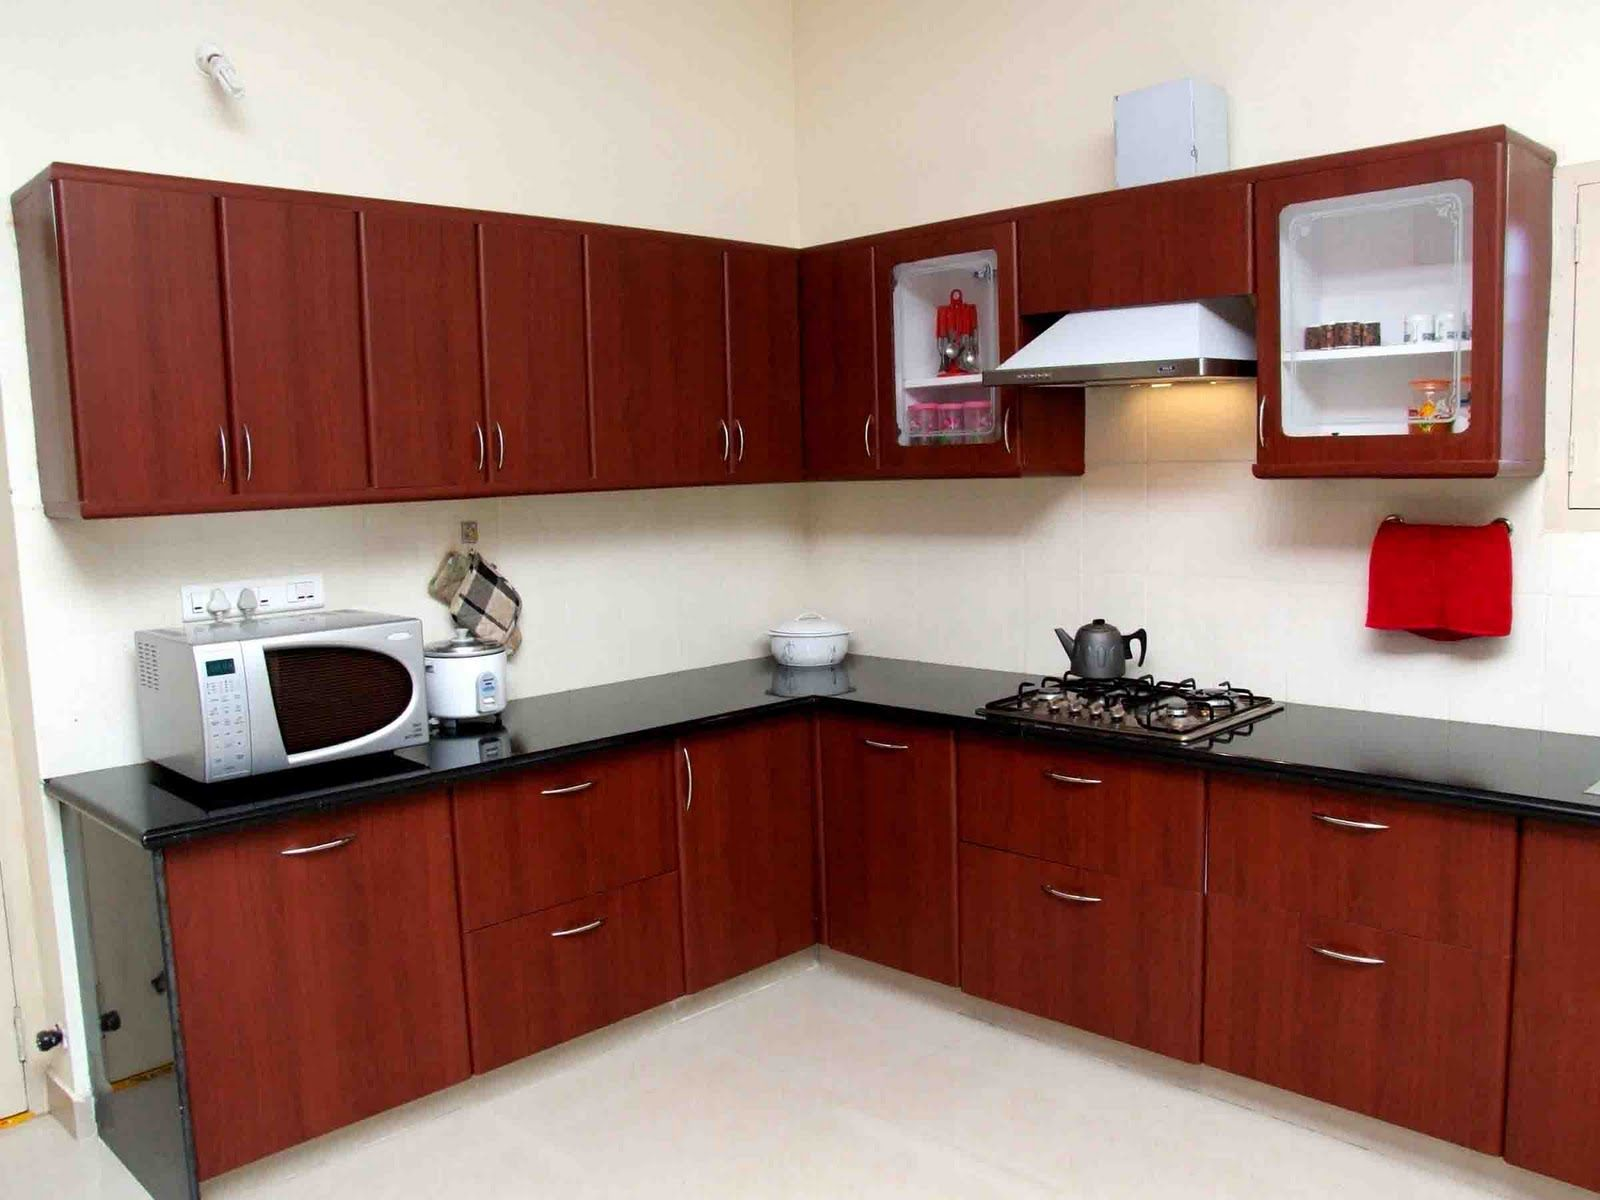 Kitchen Design in Pakistan 2020 Ideas with Pictures on Kitchen Model Ideas  id=21683